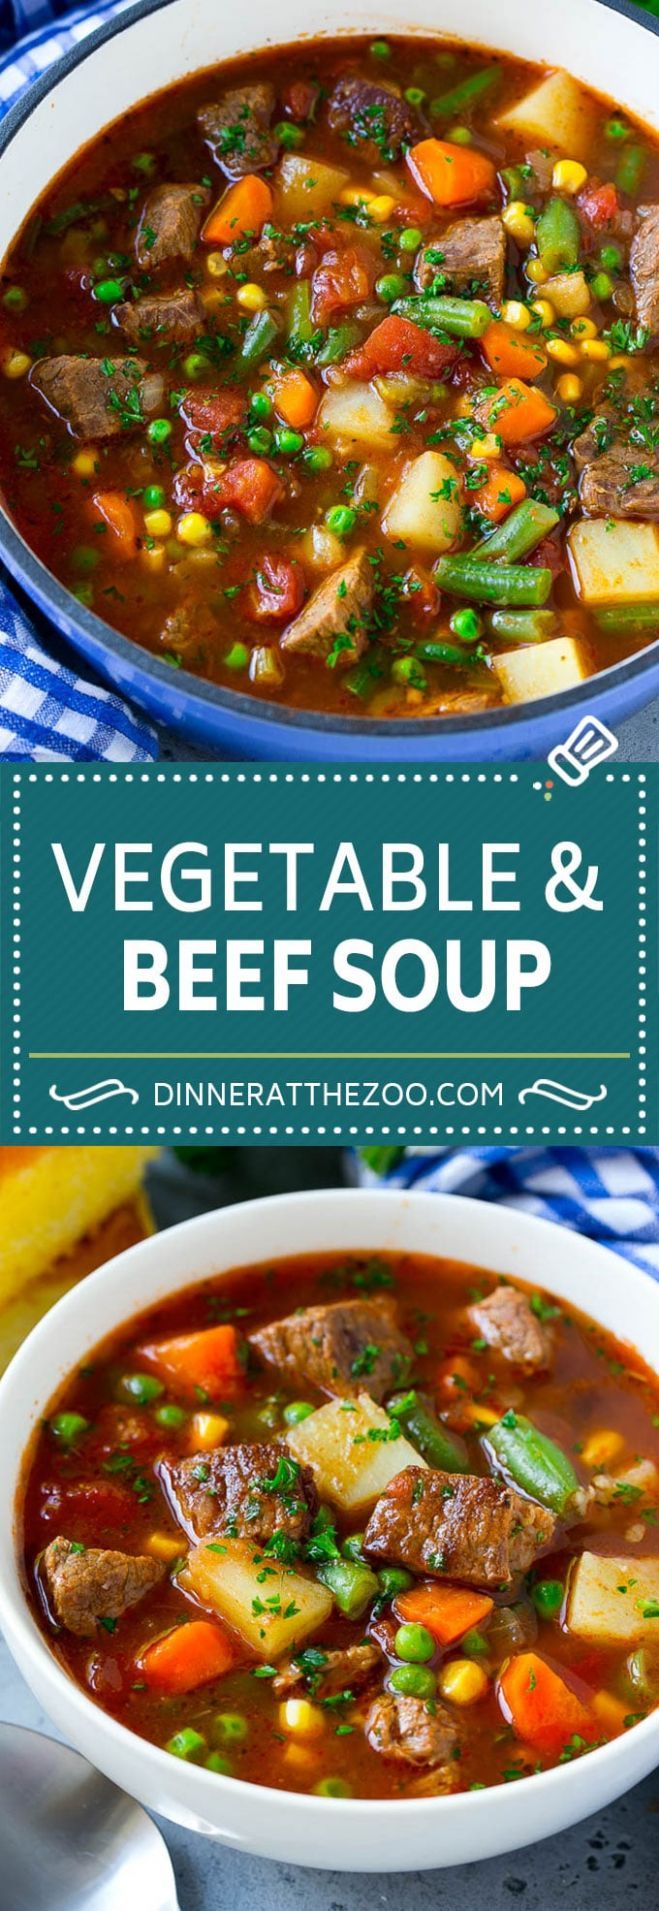 Vegetable Beef Soup - Dinner at the Zoo - Recipes Veg Beef Soup